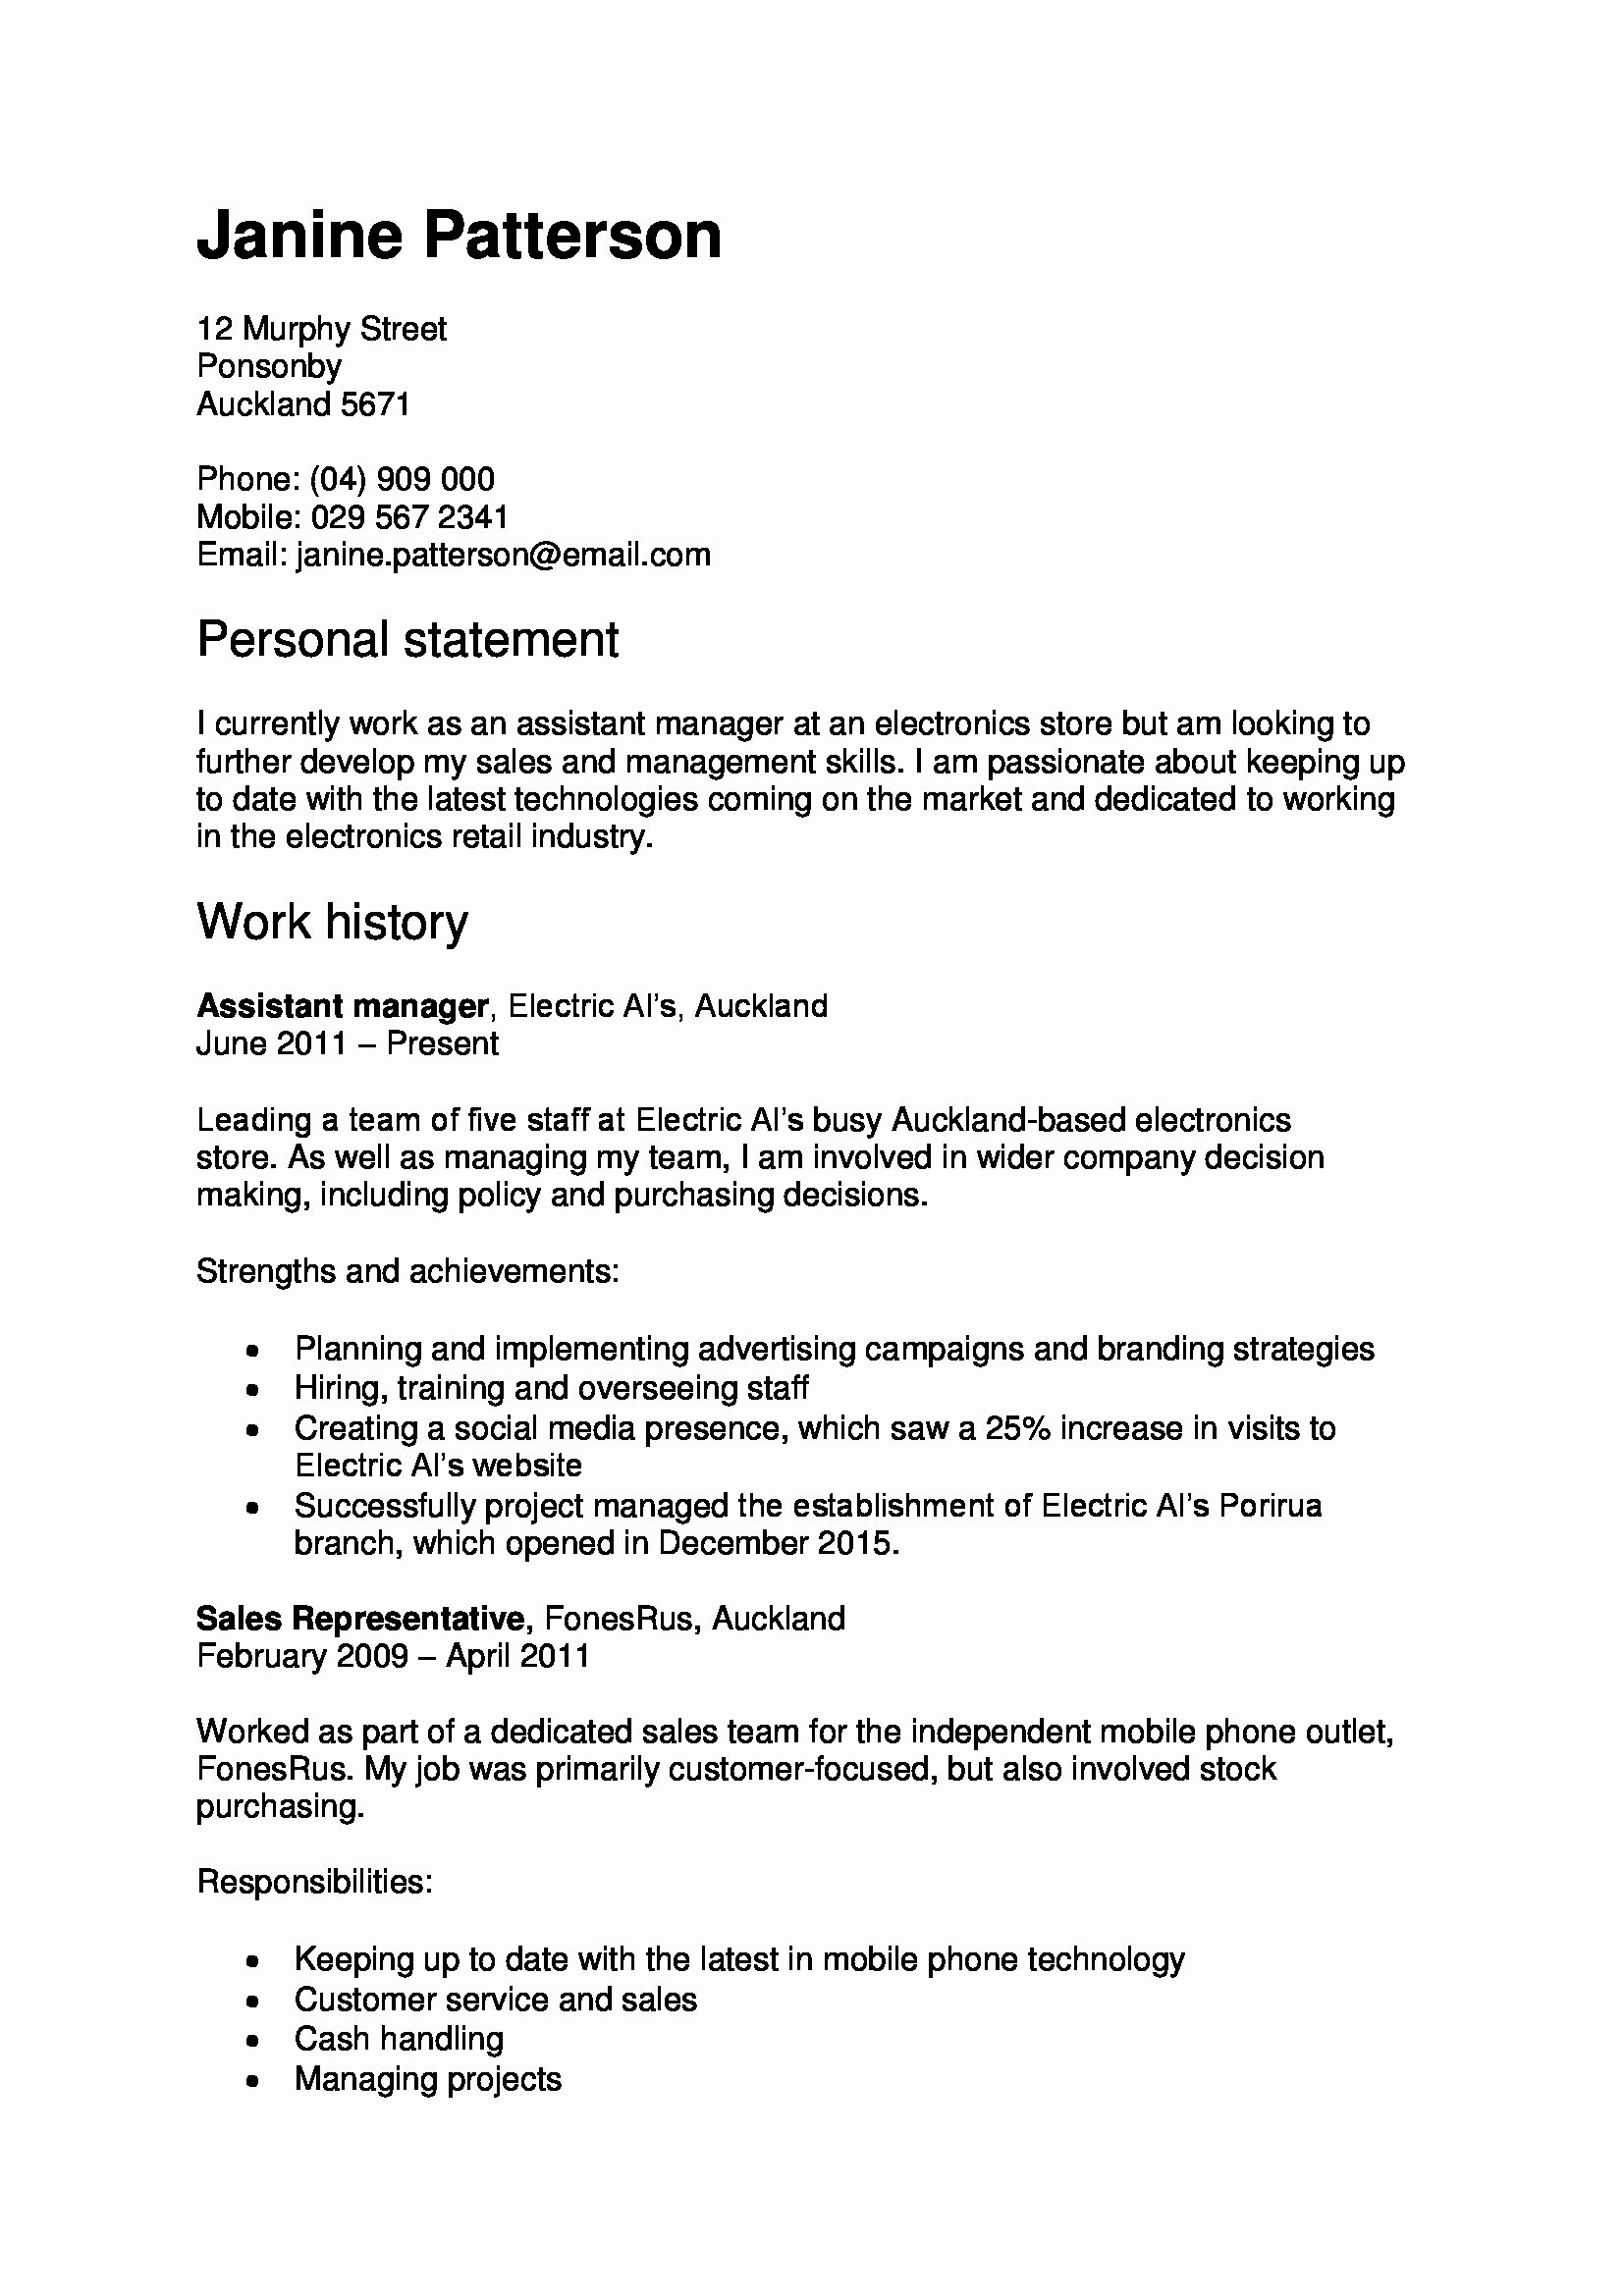 Resume Rabbit - 17 Resume Rabbit Reviews